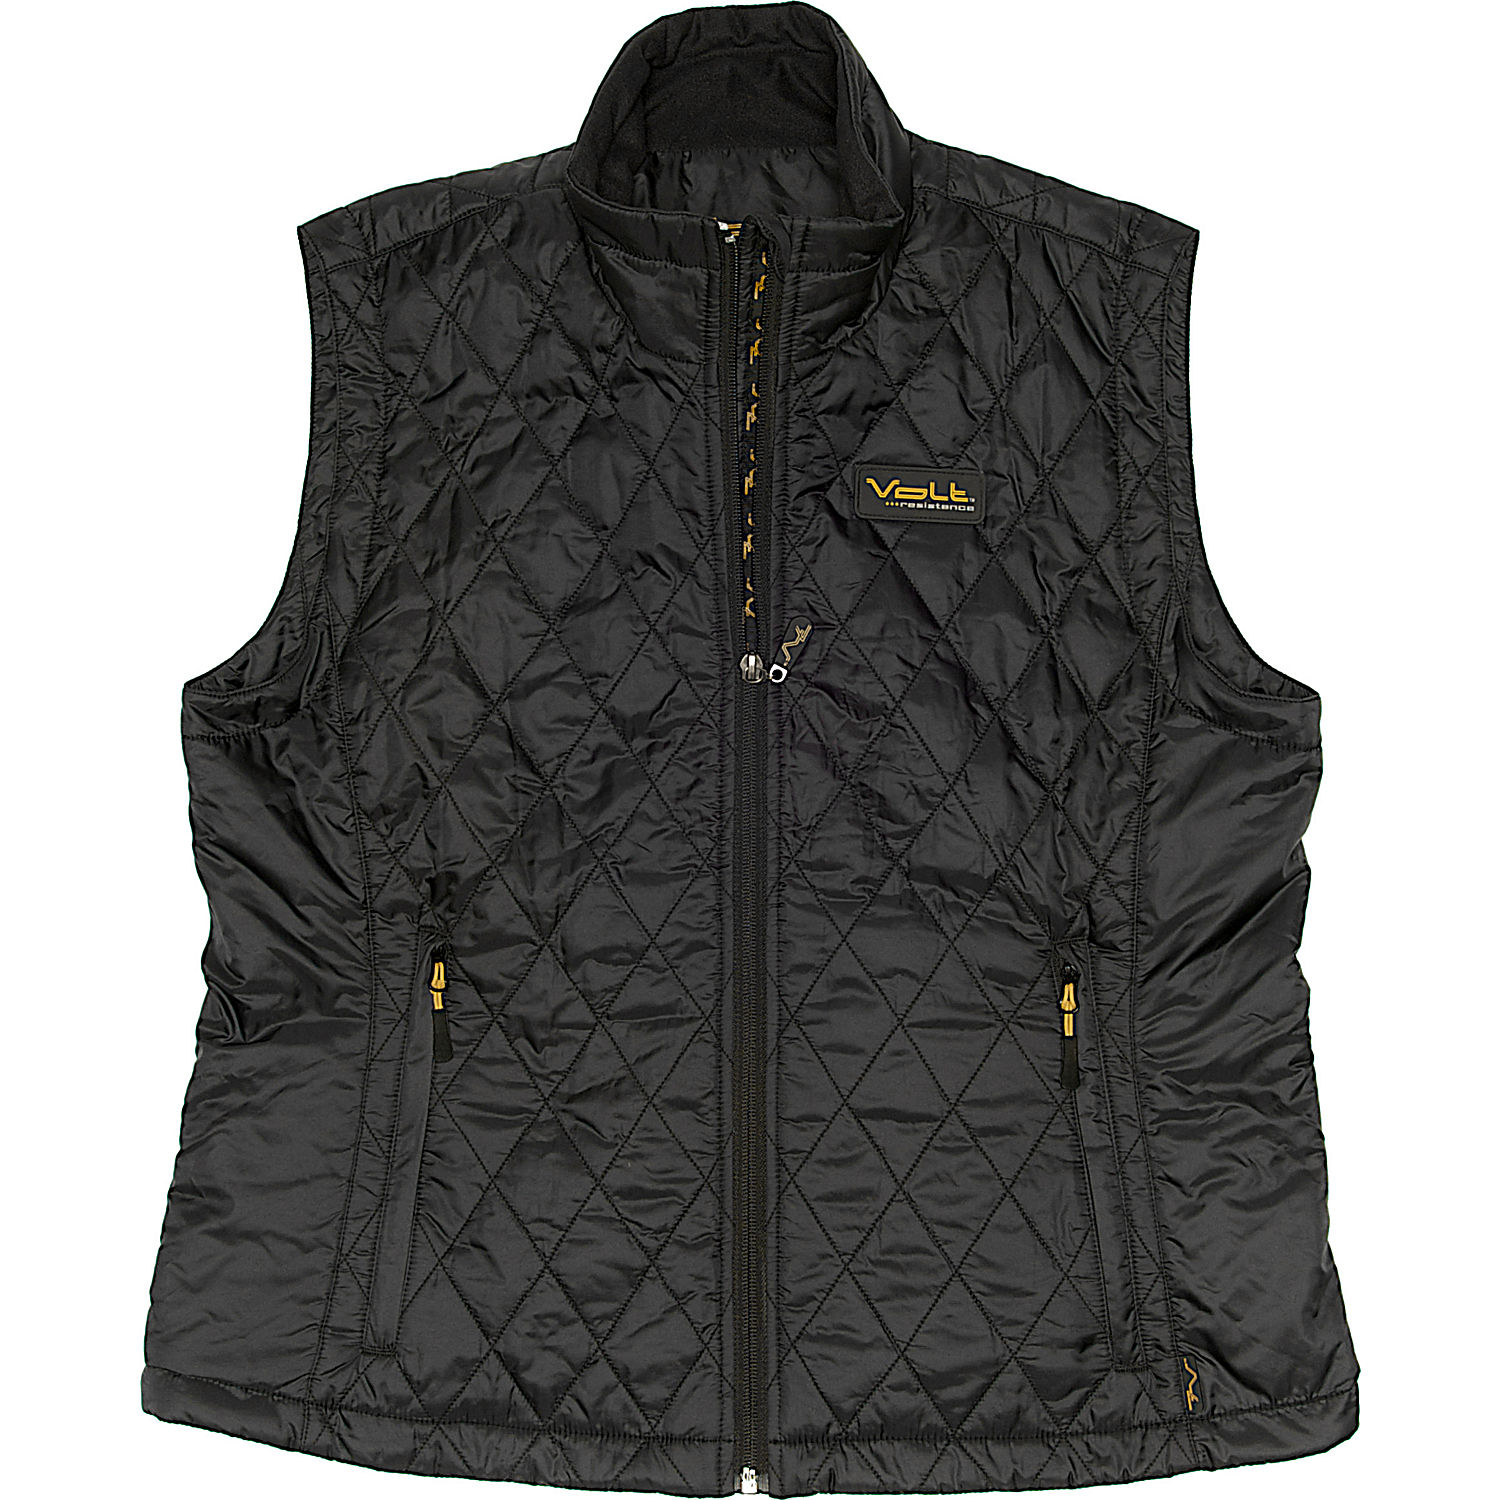 Volt Heated Clothing Womens Insulated Vest - eBags.com